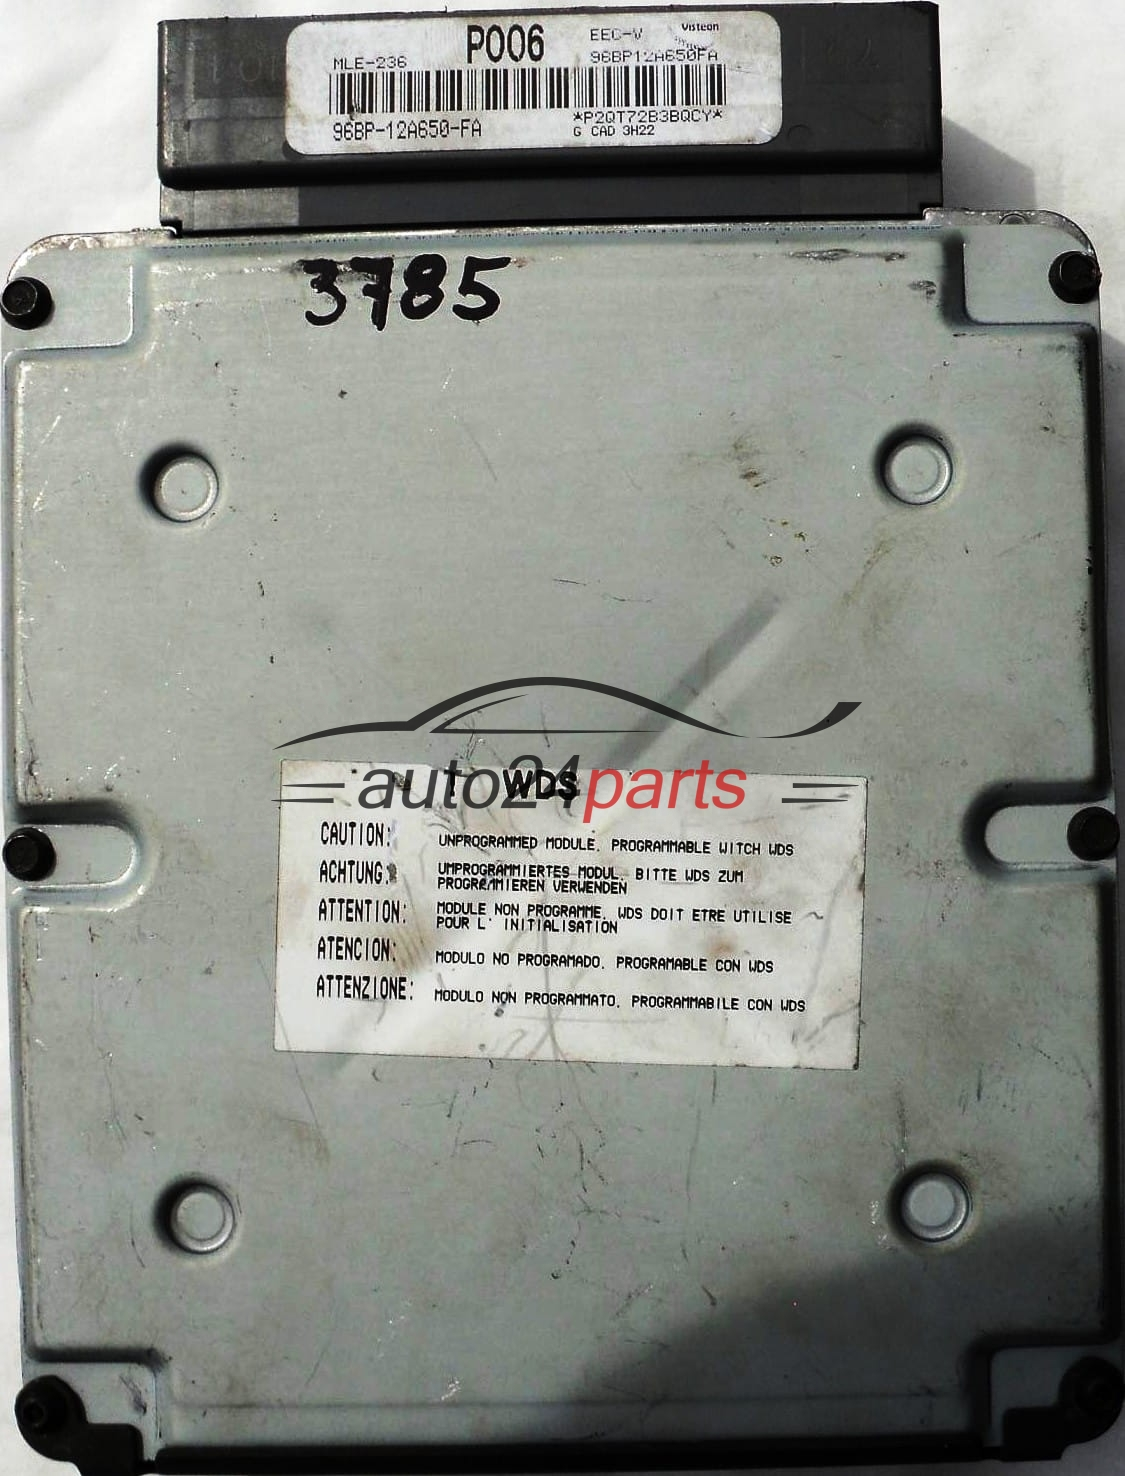 ECU ENGINE CONTROLLER FORD GALAXY 2 0 96BP12A650FA POO6 MLE-236 EEC-V,  96BP-12A650-FA